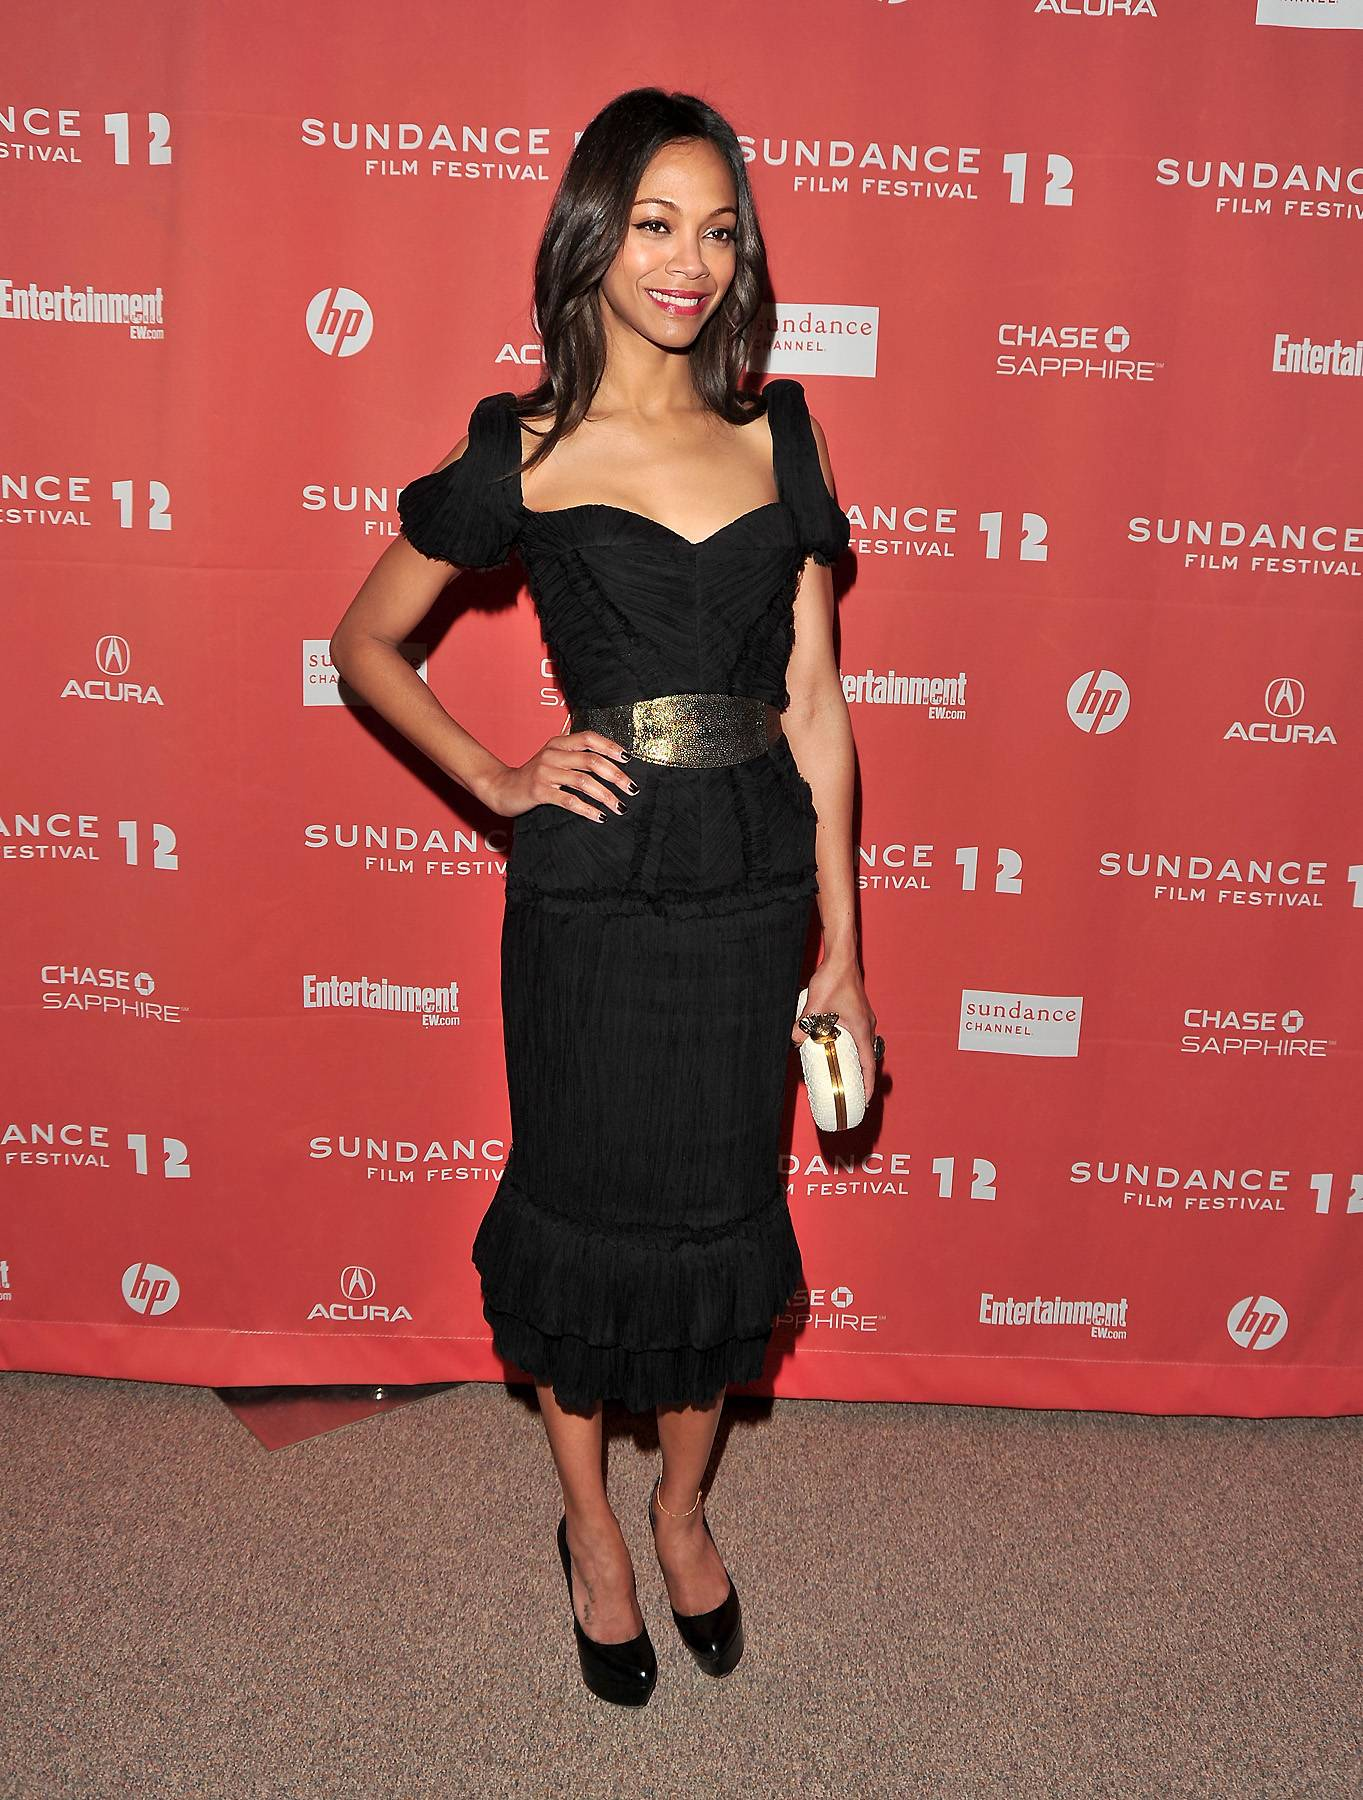 Zoe Saldana - She looks like a model, so there's no doubt that Zoe Saldana is the perfect canvas for June Ambrose.(Photo: George Pimentel/Getty Images)